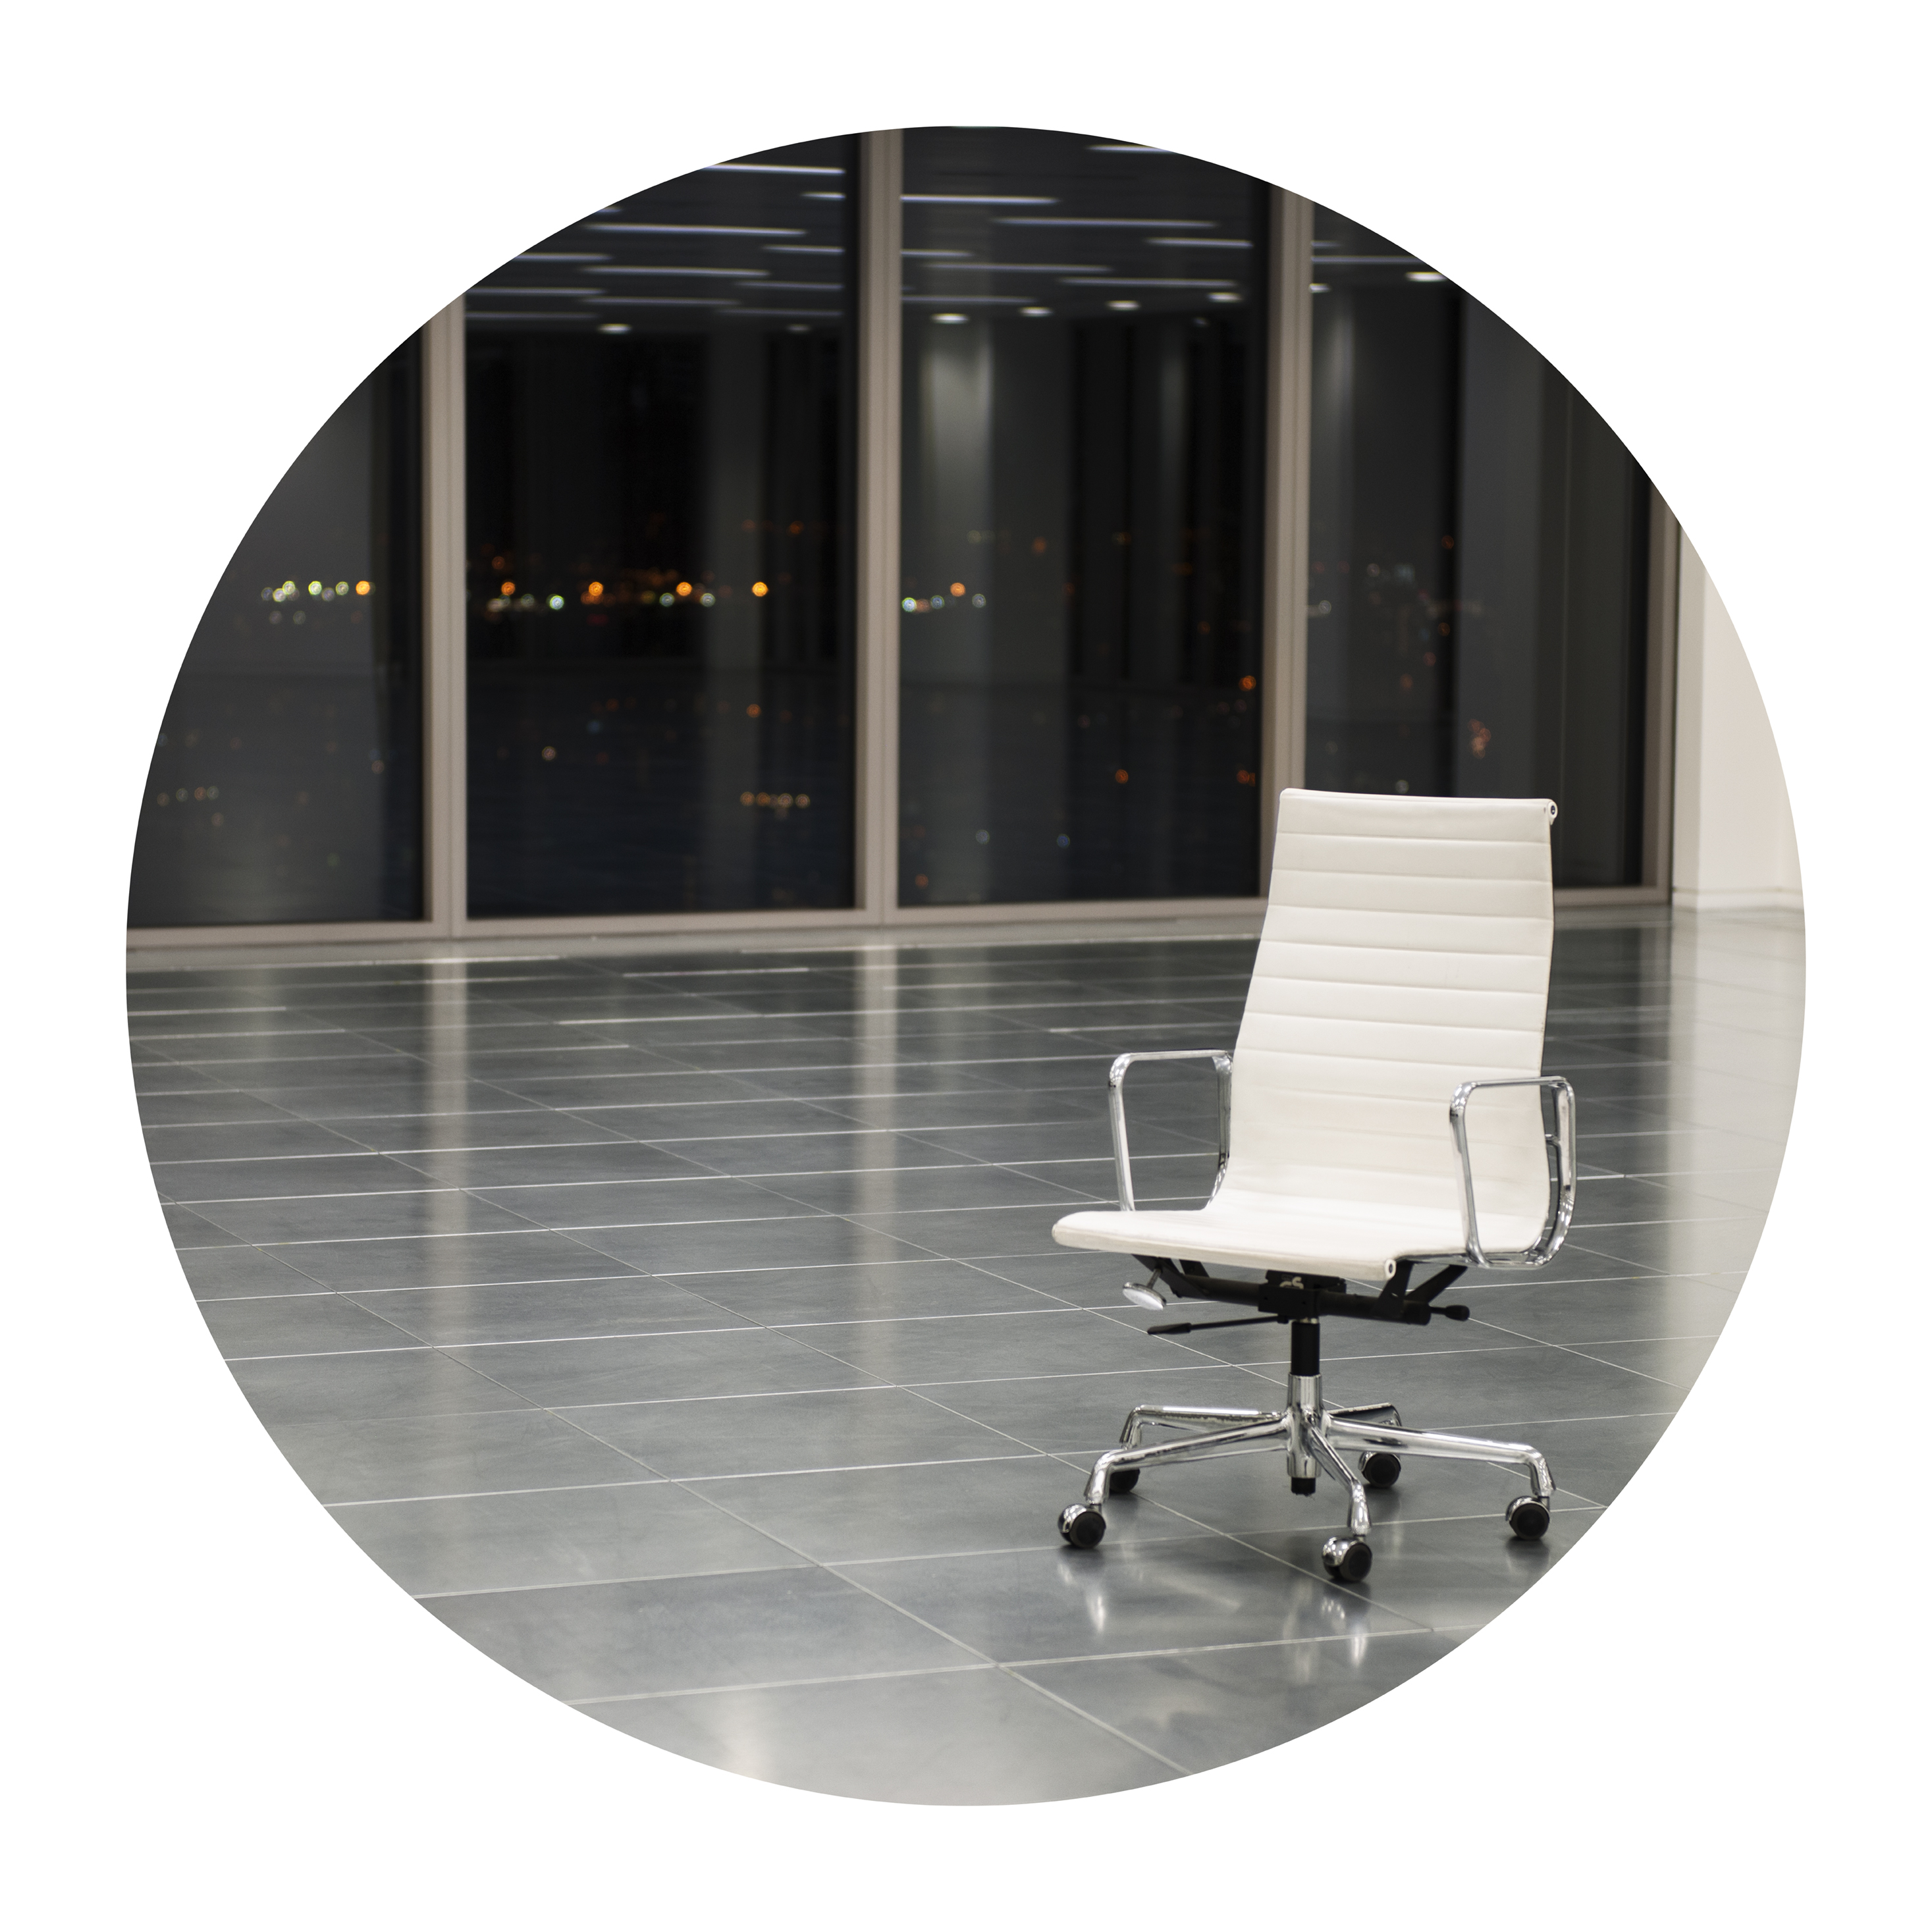 <i>DARK POOL OFFICE PORTRAIT (Playtime)</i><br> Endura Ultra photograph<br> Diameter 35 3/8 inches<br> 2013